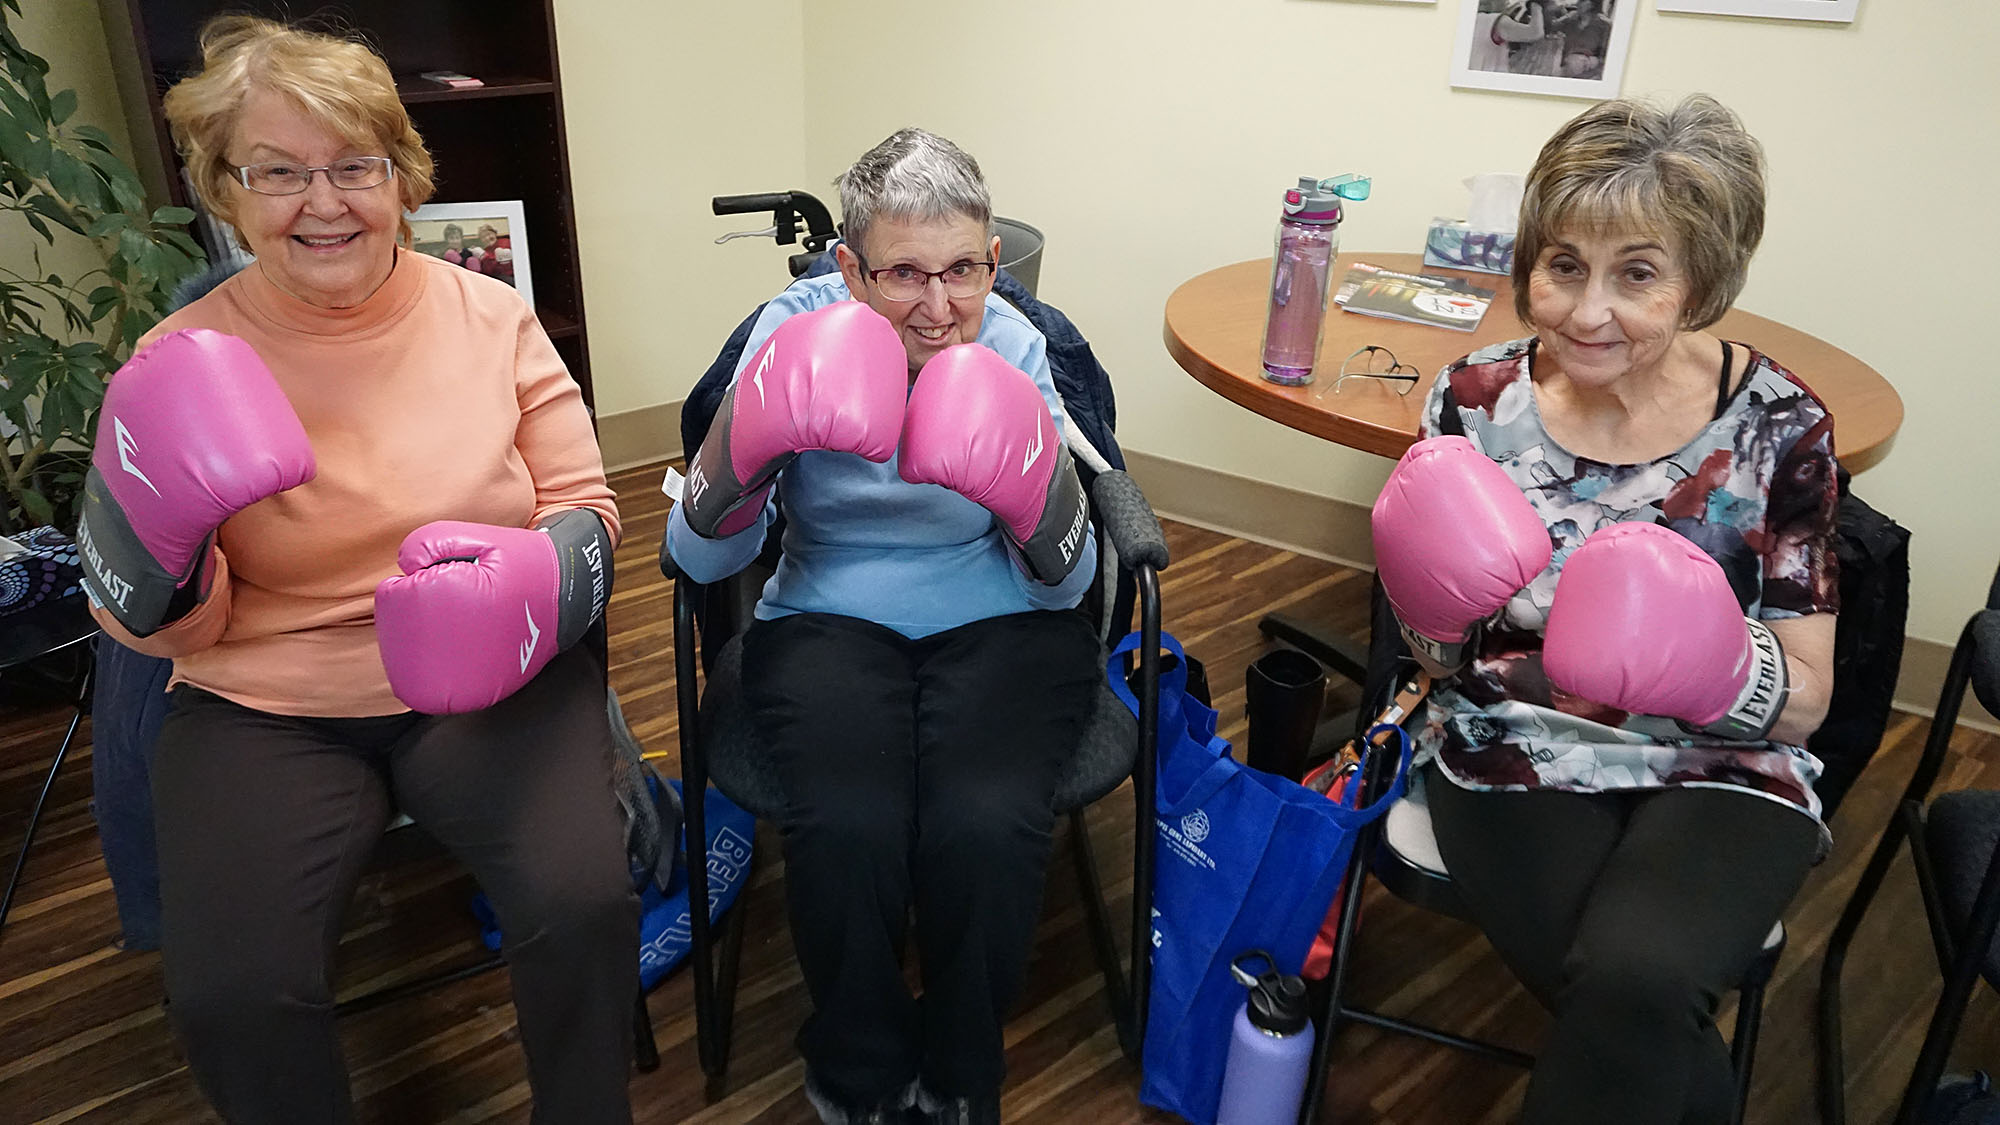 Mary Mclean, Connie Macmillan and Cindy Jussup show off their pink boxing gloves.